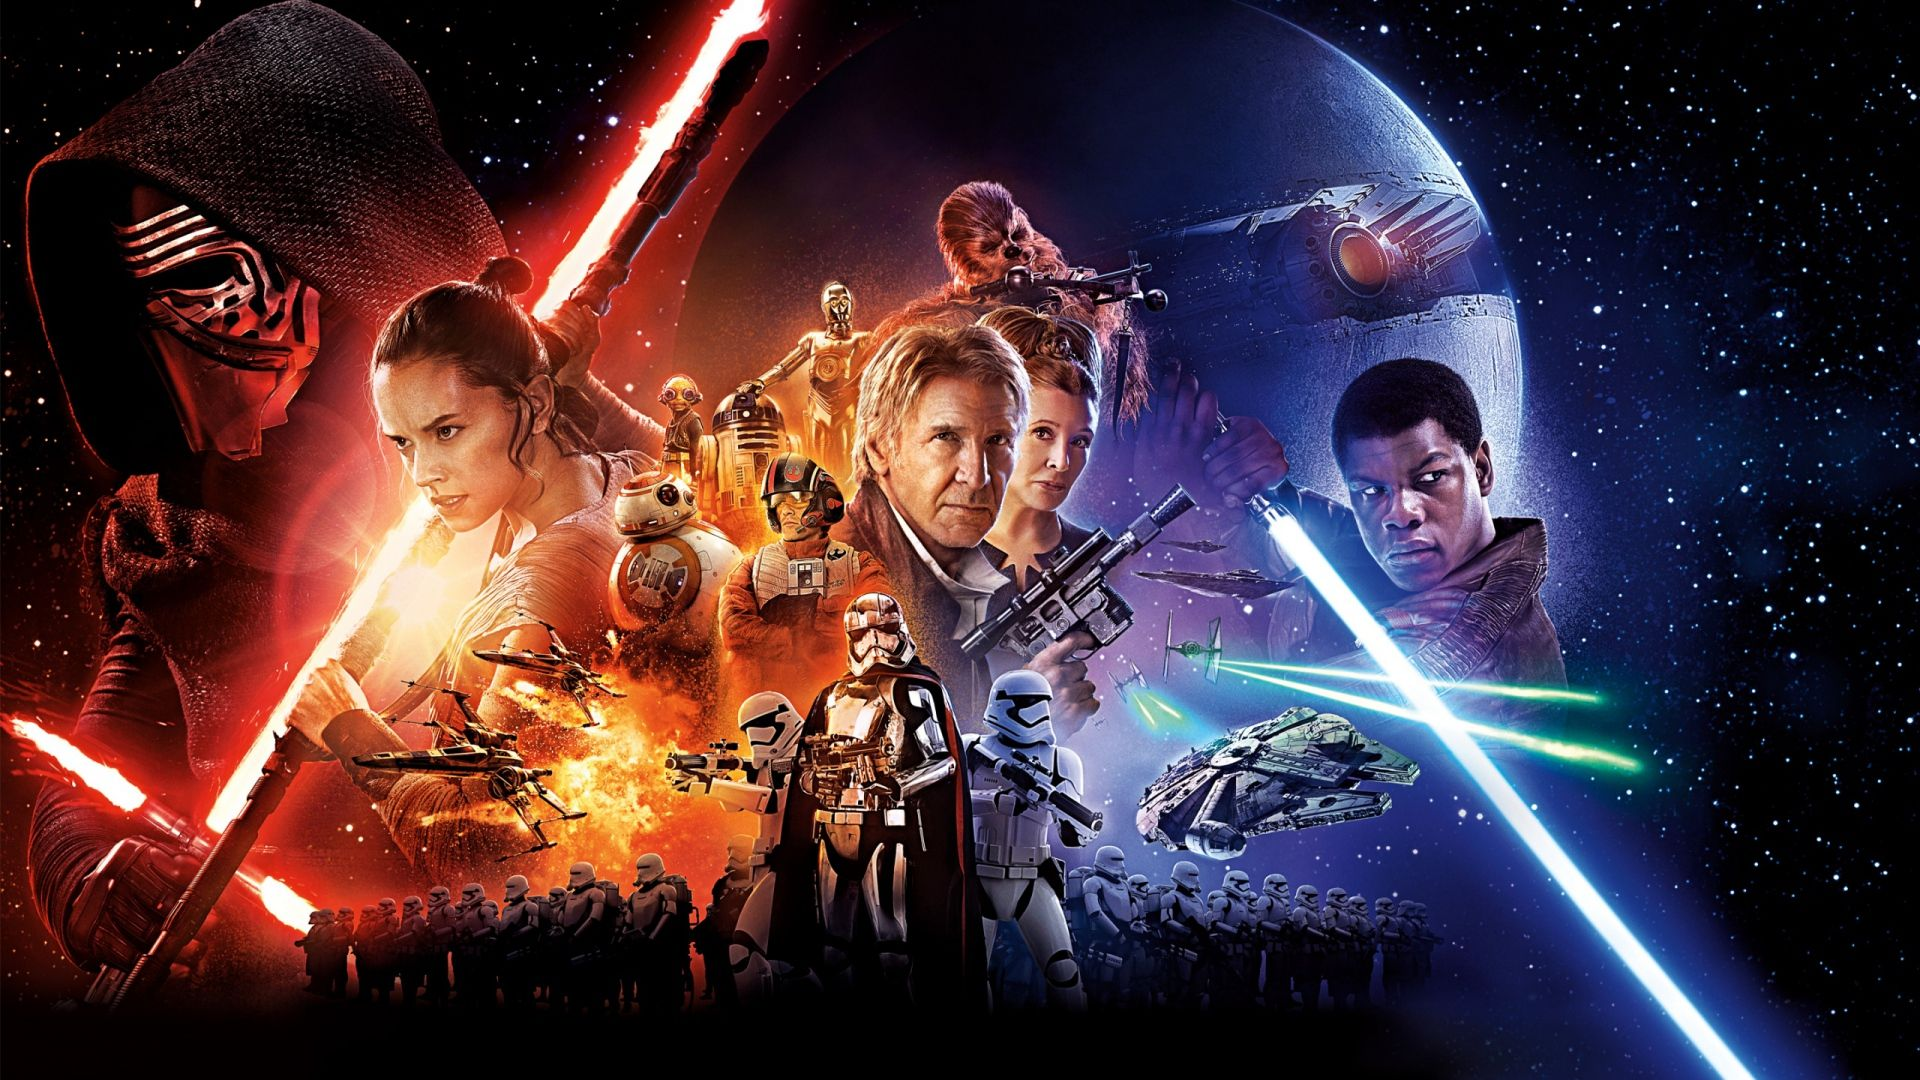 Pin By Martyna K On Star Wars Star Wars Episode Vii Force Awakens Poster Star Wars Movie